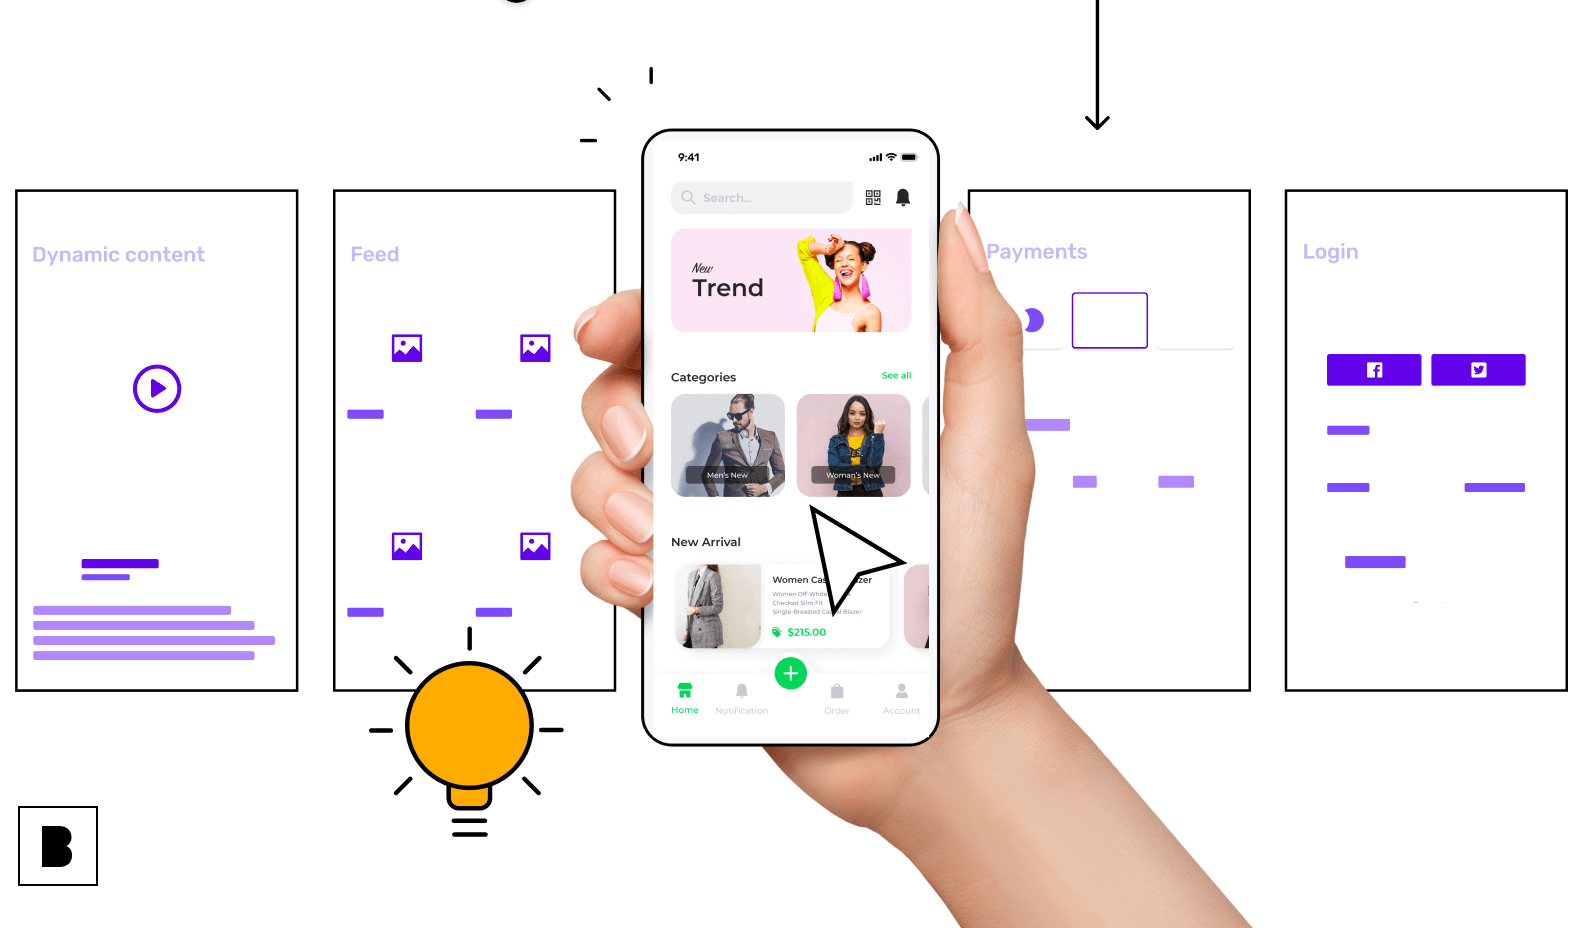 Your app screens with app features